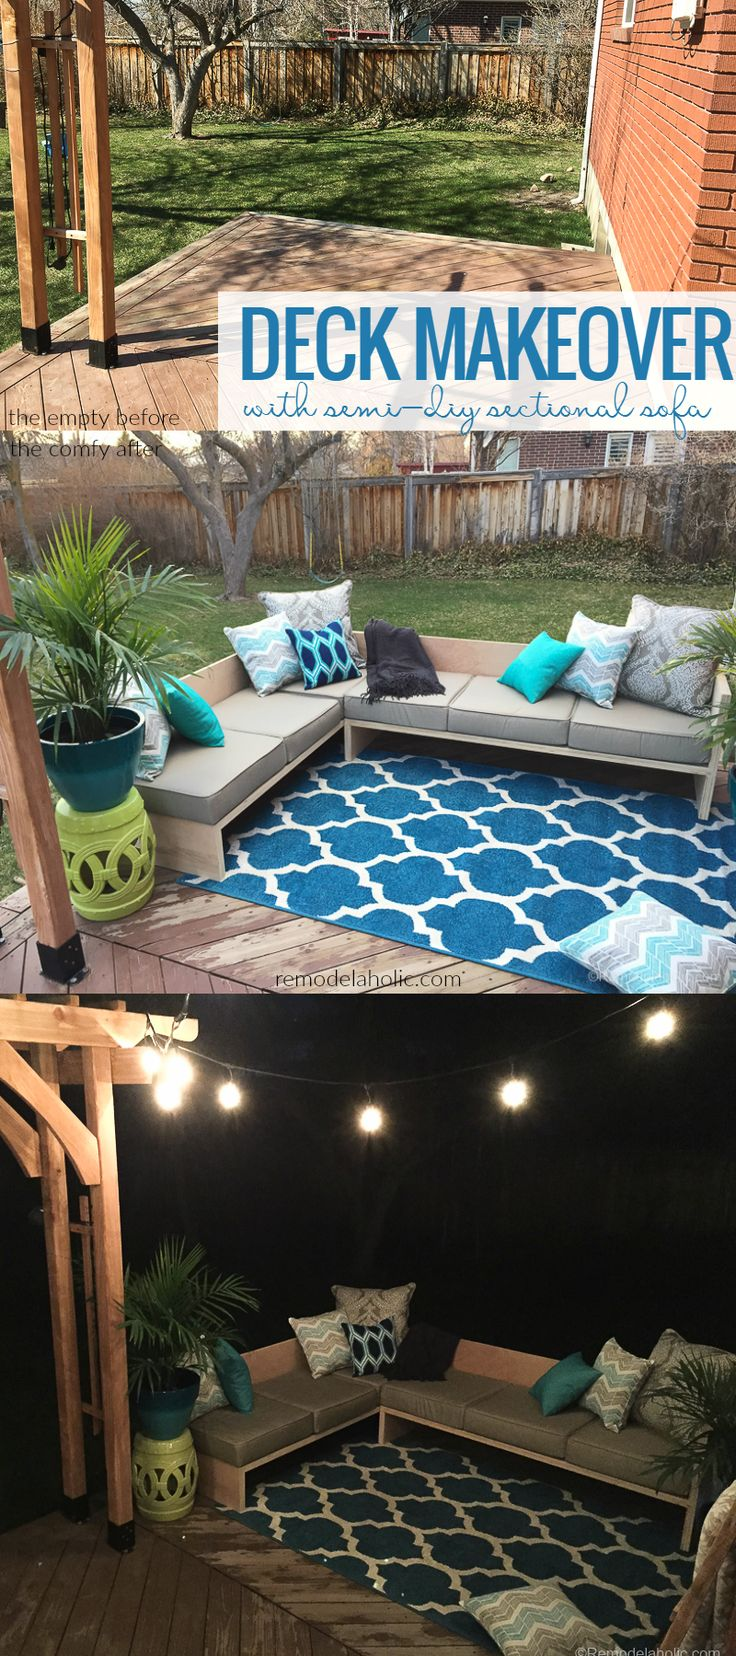 Diy outdoor furniture cushions - Deck Makeover With Diy Outdoor Sectional Sofa Using Cushions From The Better Homes And Gardens Line